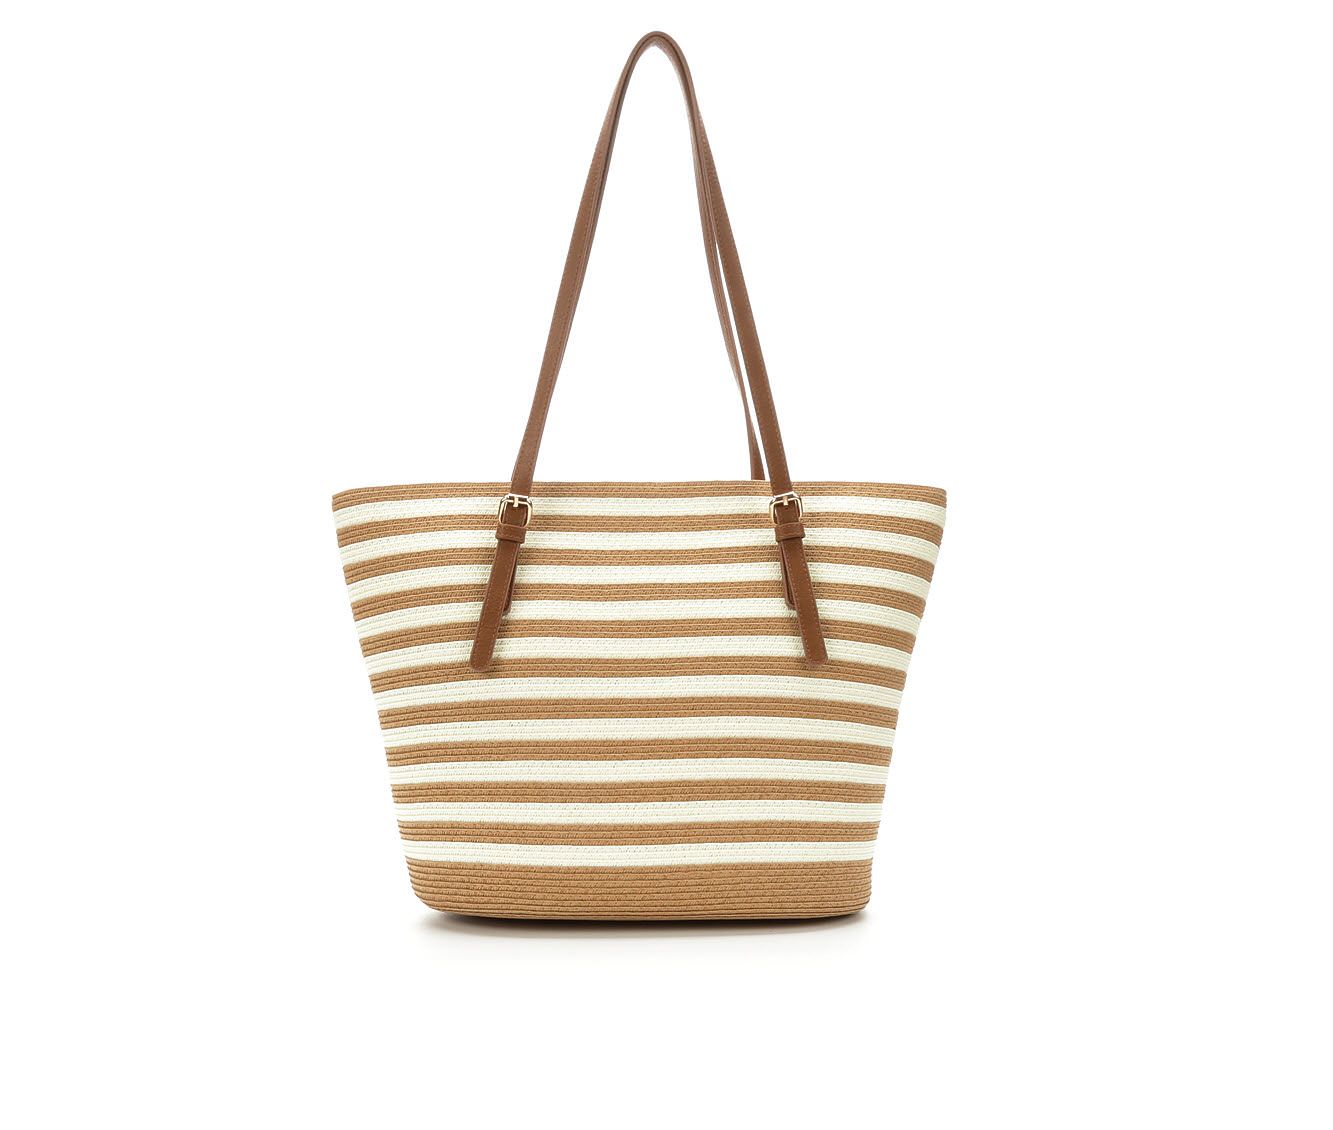 Bueno Of California Papered Straw Tote Handbag (Beige)